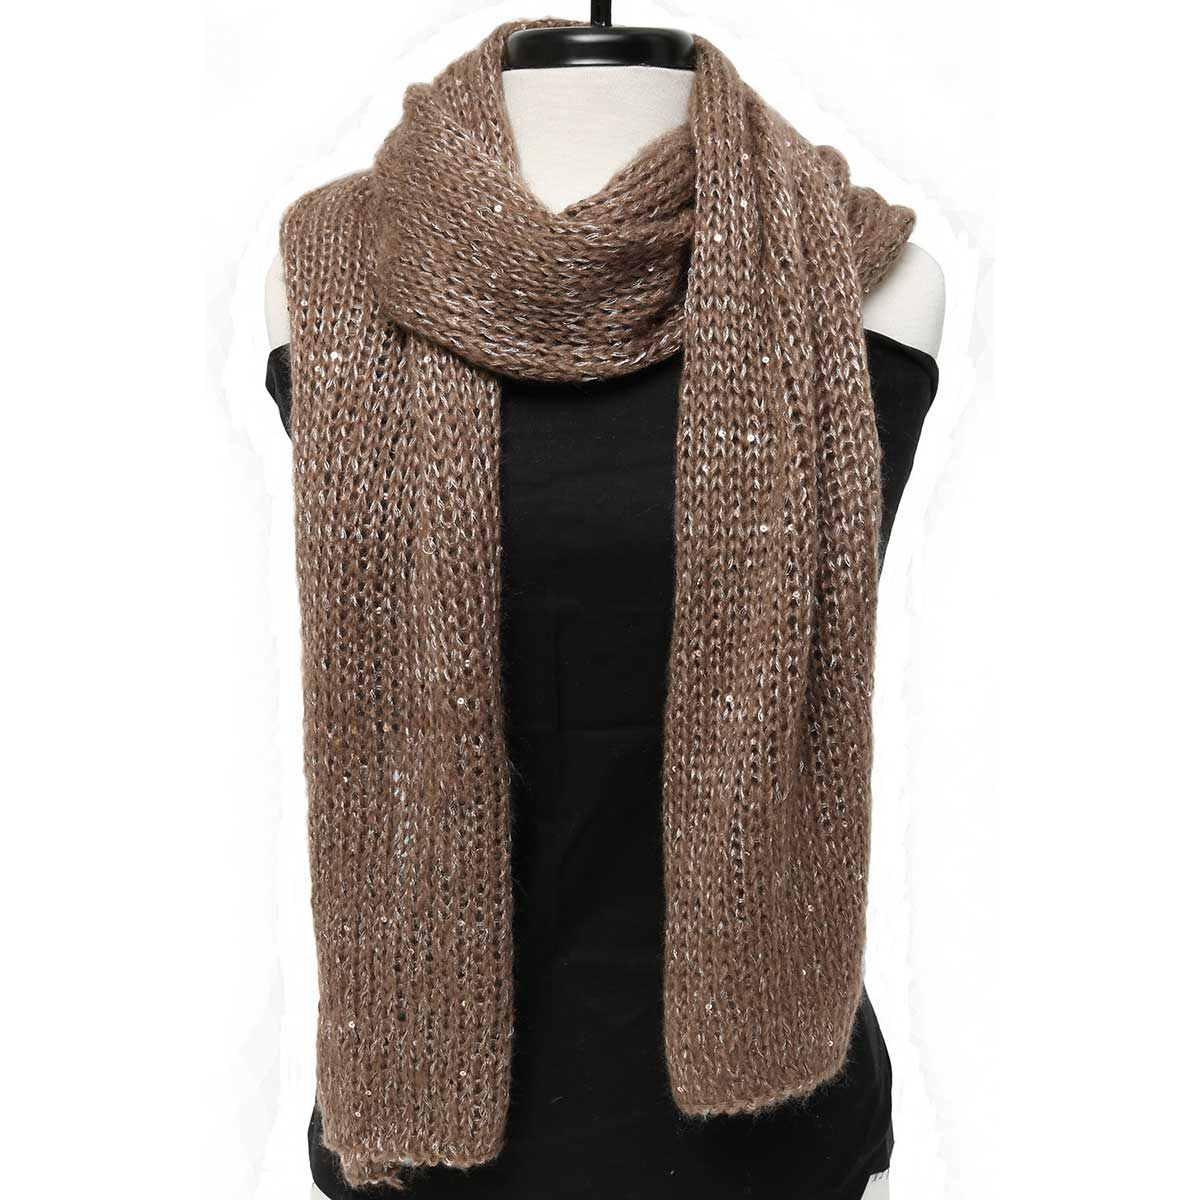 "Mini Sequin/Sparkle Knit Scarf 88""x16"" Taupe *30sp"